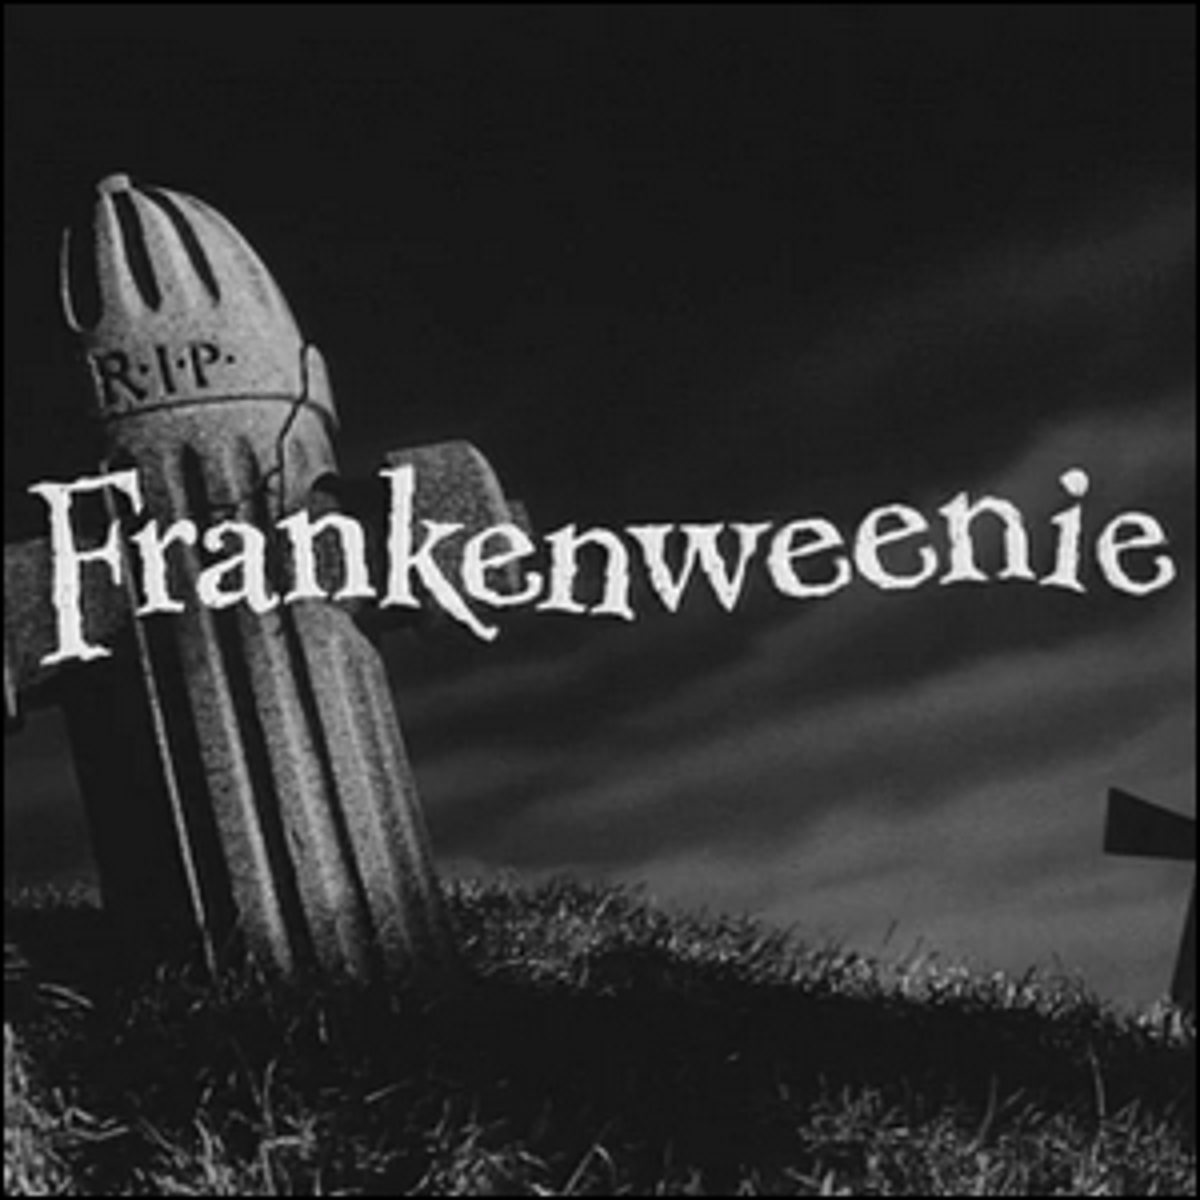 A title screen for the movie Frankenweenie.